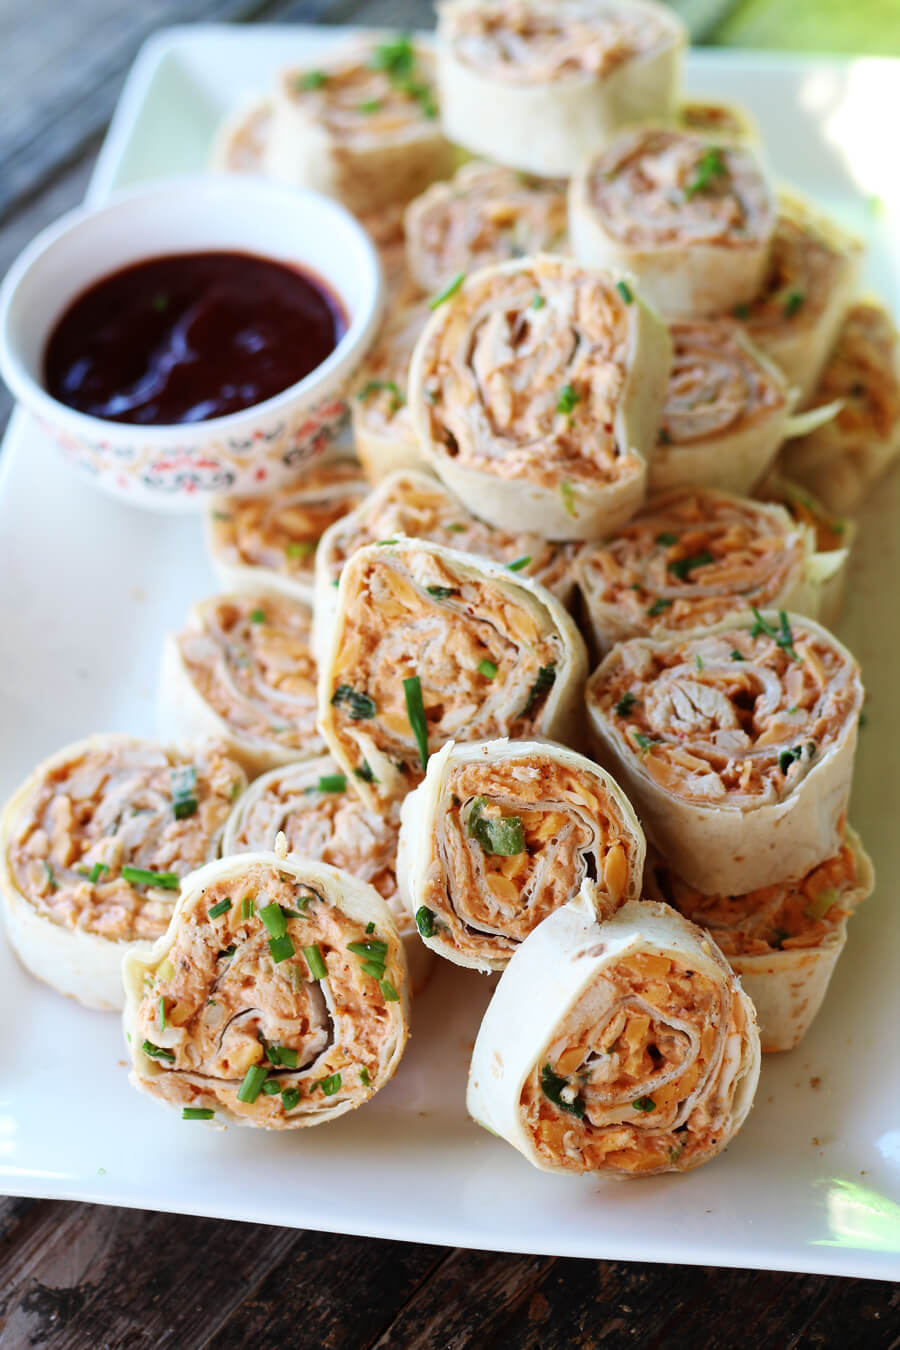 A platter of party appetizers with dipping sauce